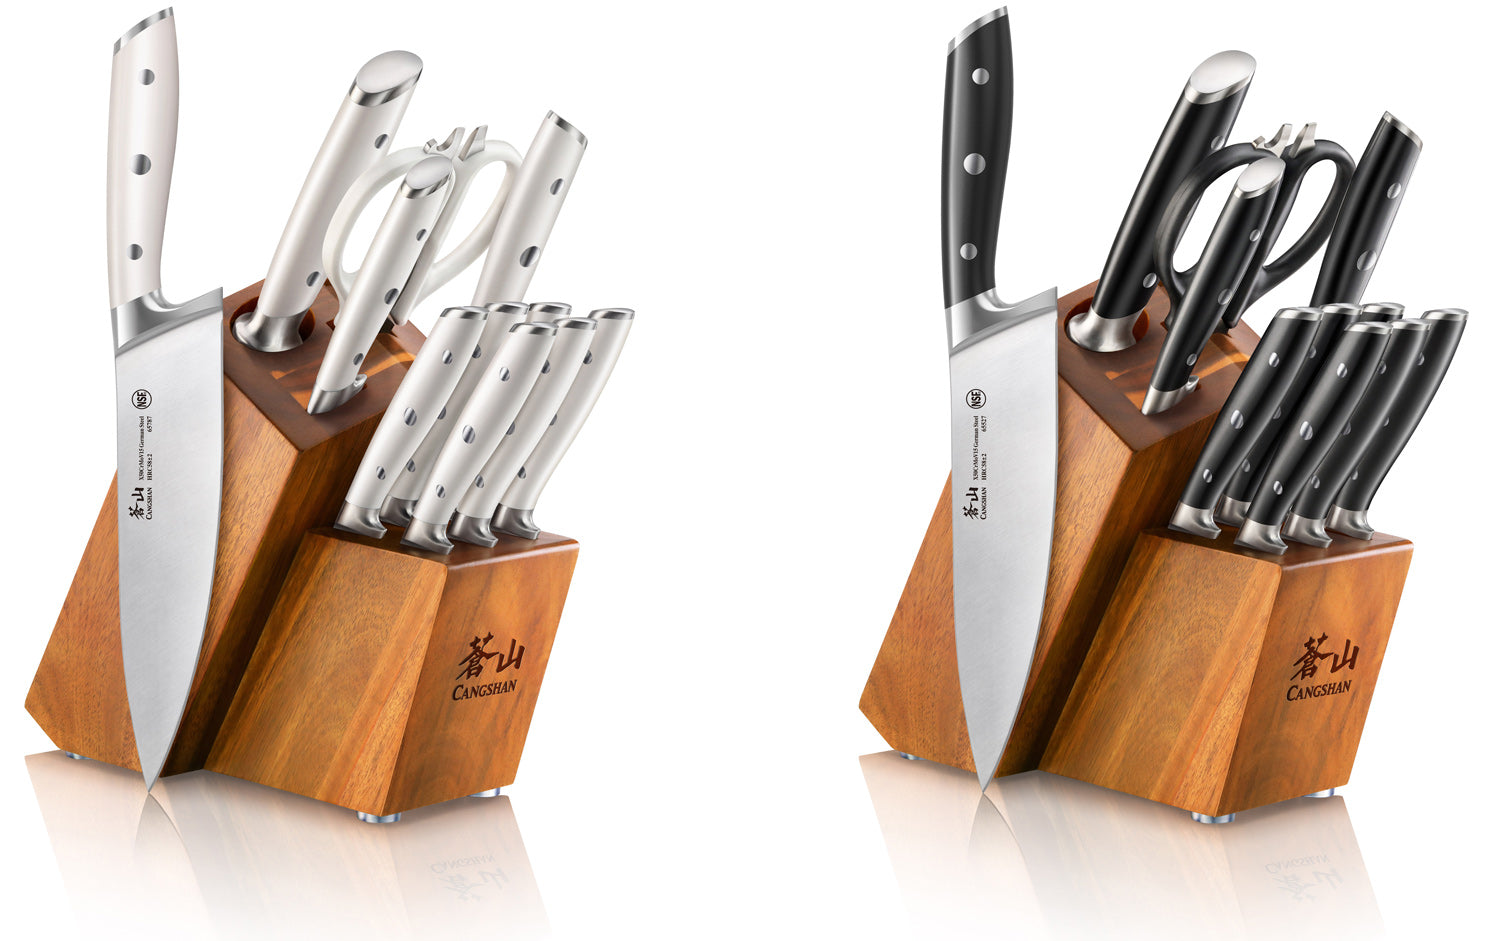 Side profile of ALPS Series 12 piece knife combos next to an 8 inch chef's knife from the set.